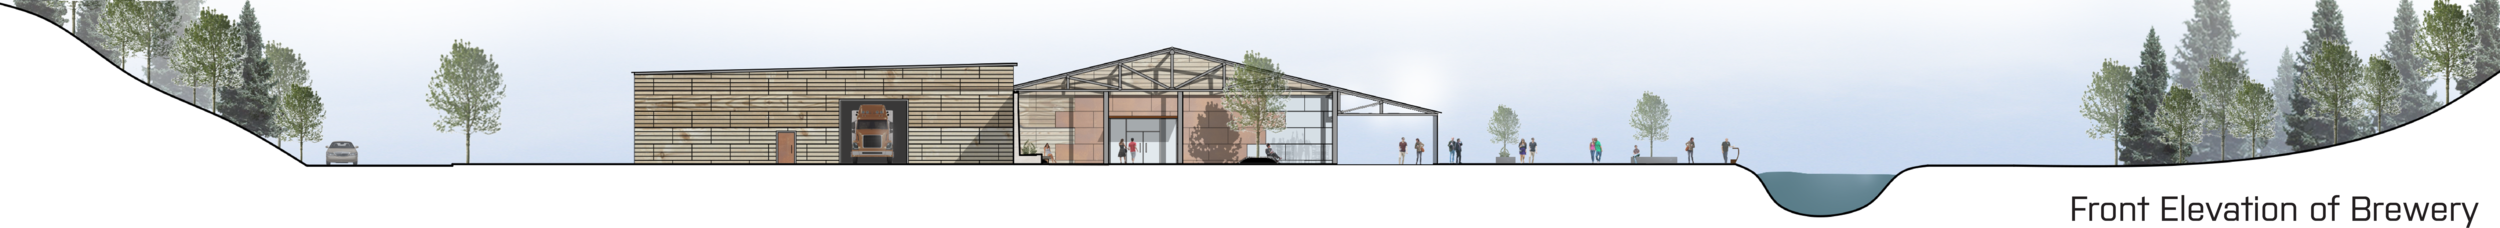 SITE SECTION AND FRONT ELEVATION OF THE BREWERY